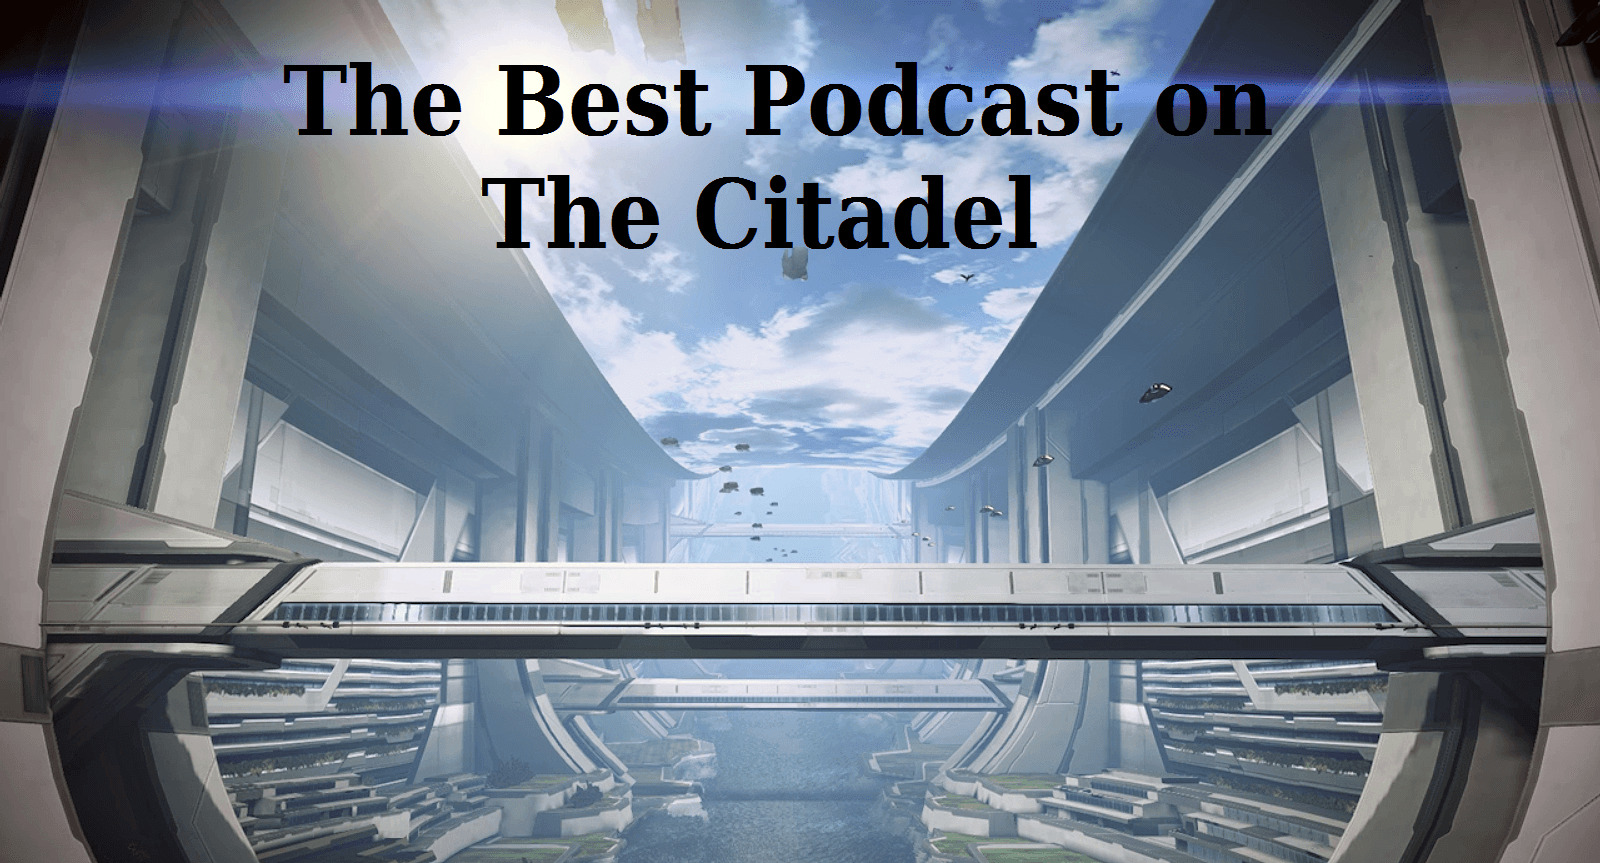 The Best Podcast on the Citadel, Episode 1